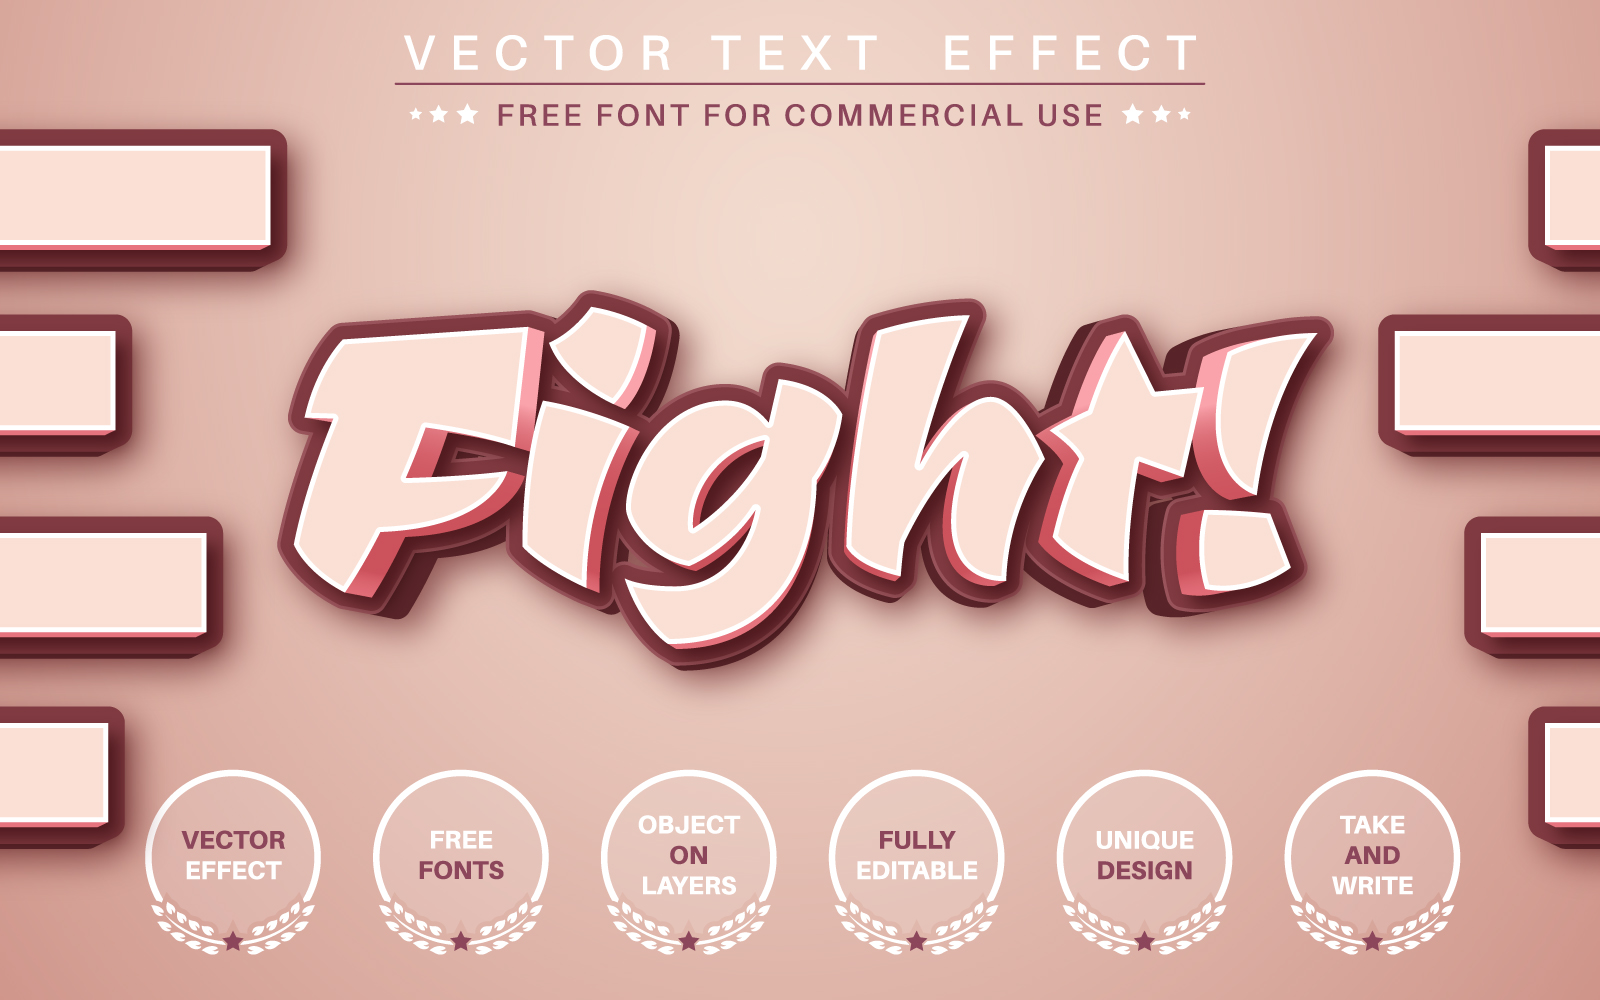 Fight! - Editable Text Effect, Font Style Graphic Illustration